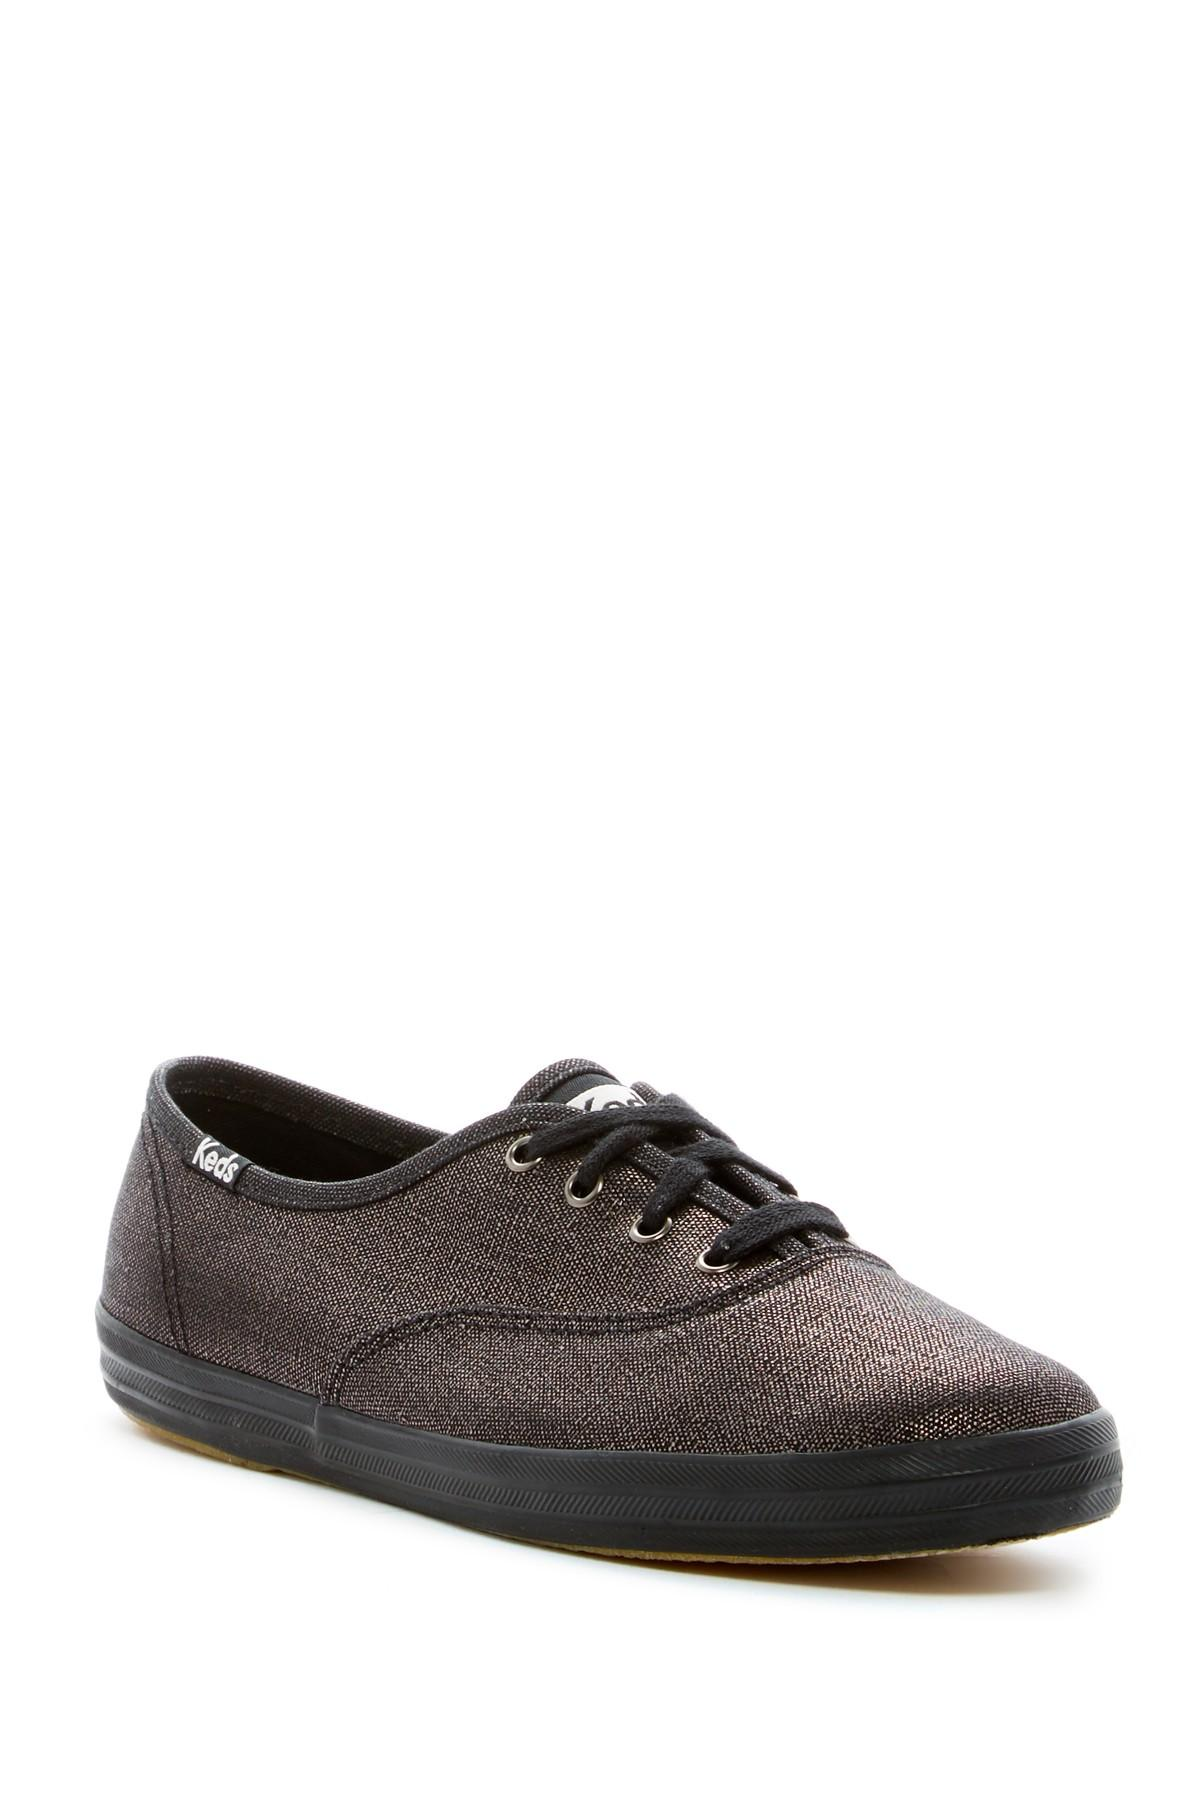 keds chion metallic canvas sneaker in black lyst